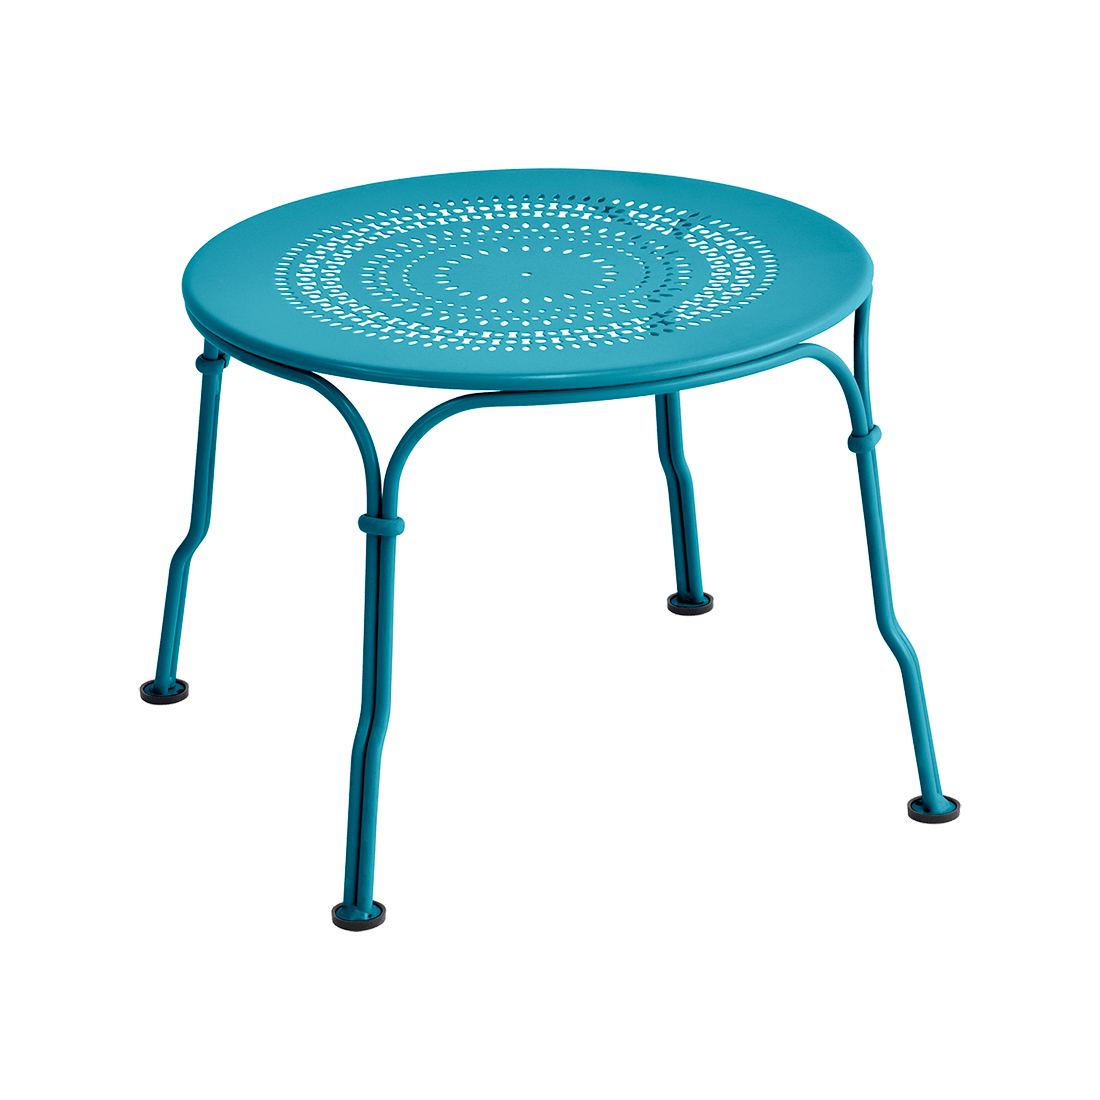 Table Basse Jardin Blanche Table Basse 1900 Table Basse Jardin Table Basse Metal